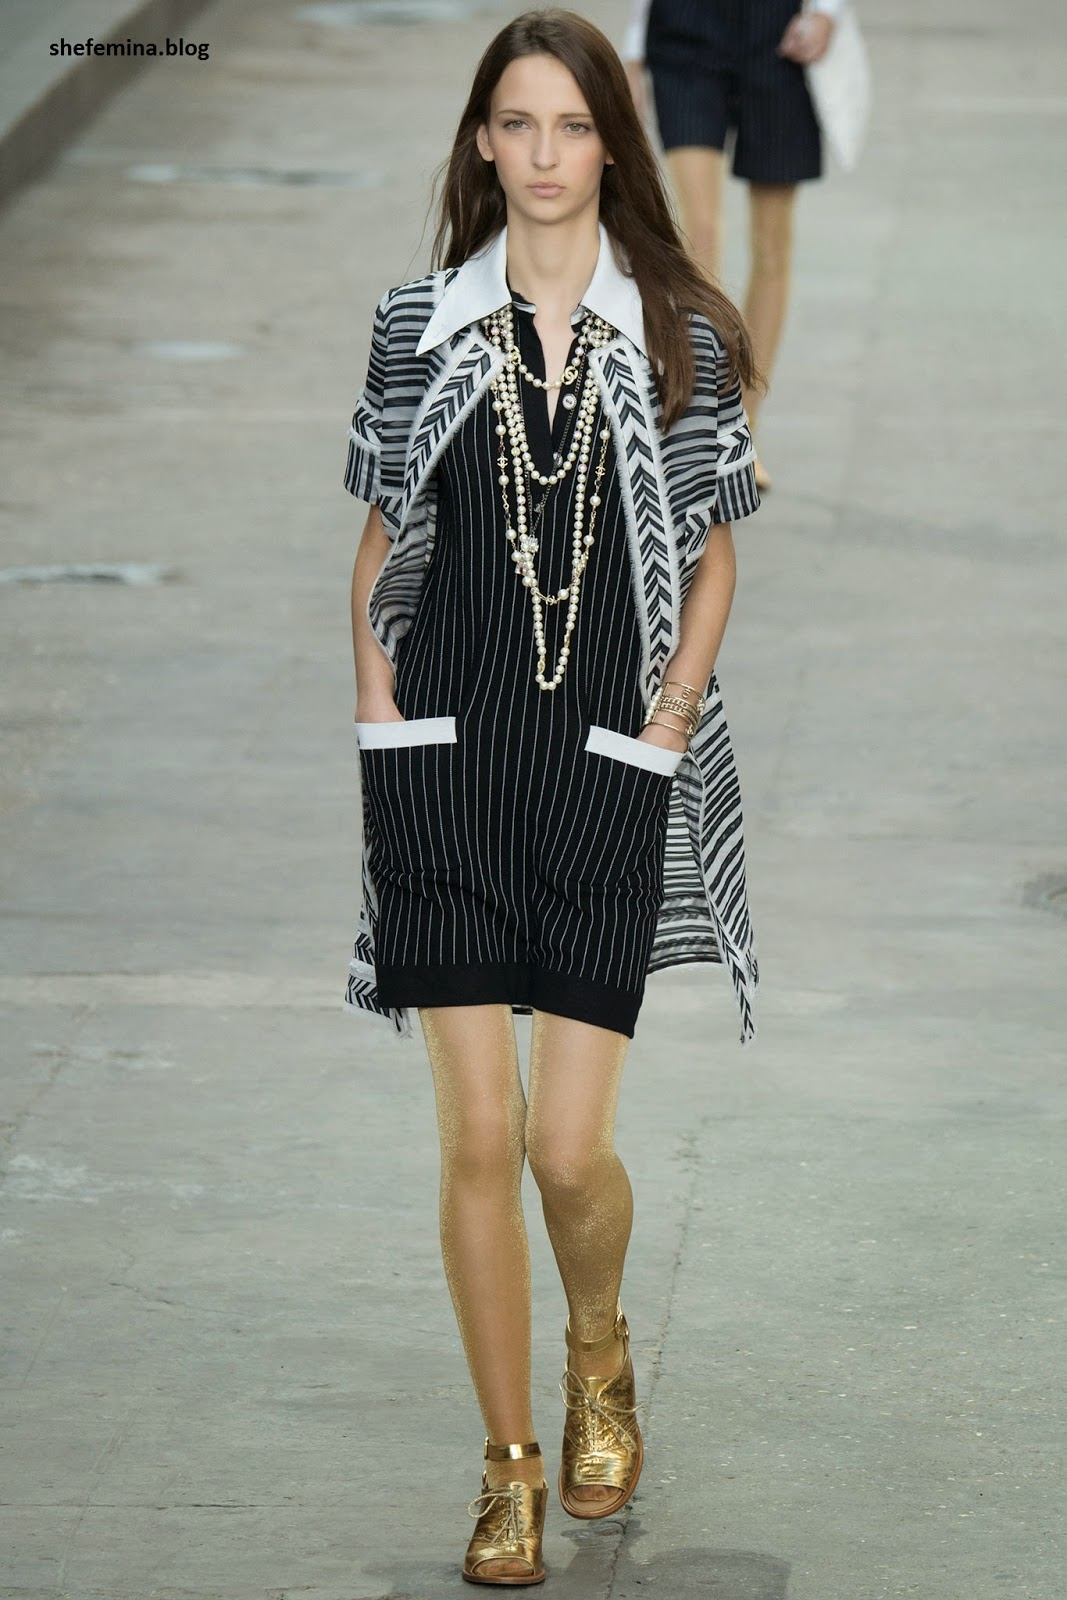 Chanel Spring 2015 dresses HD wallpaper 25